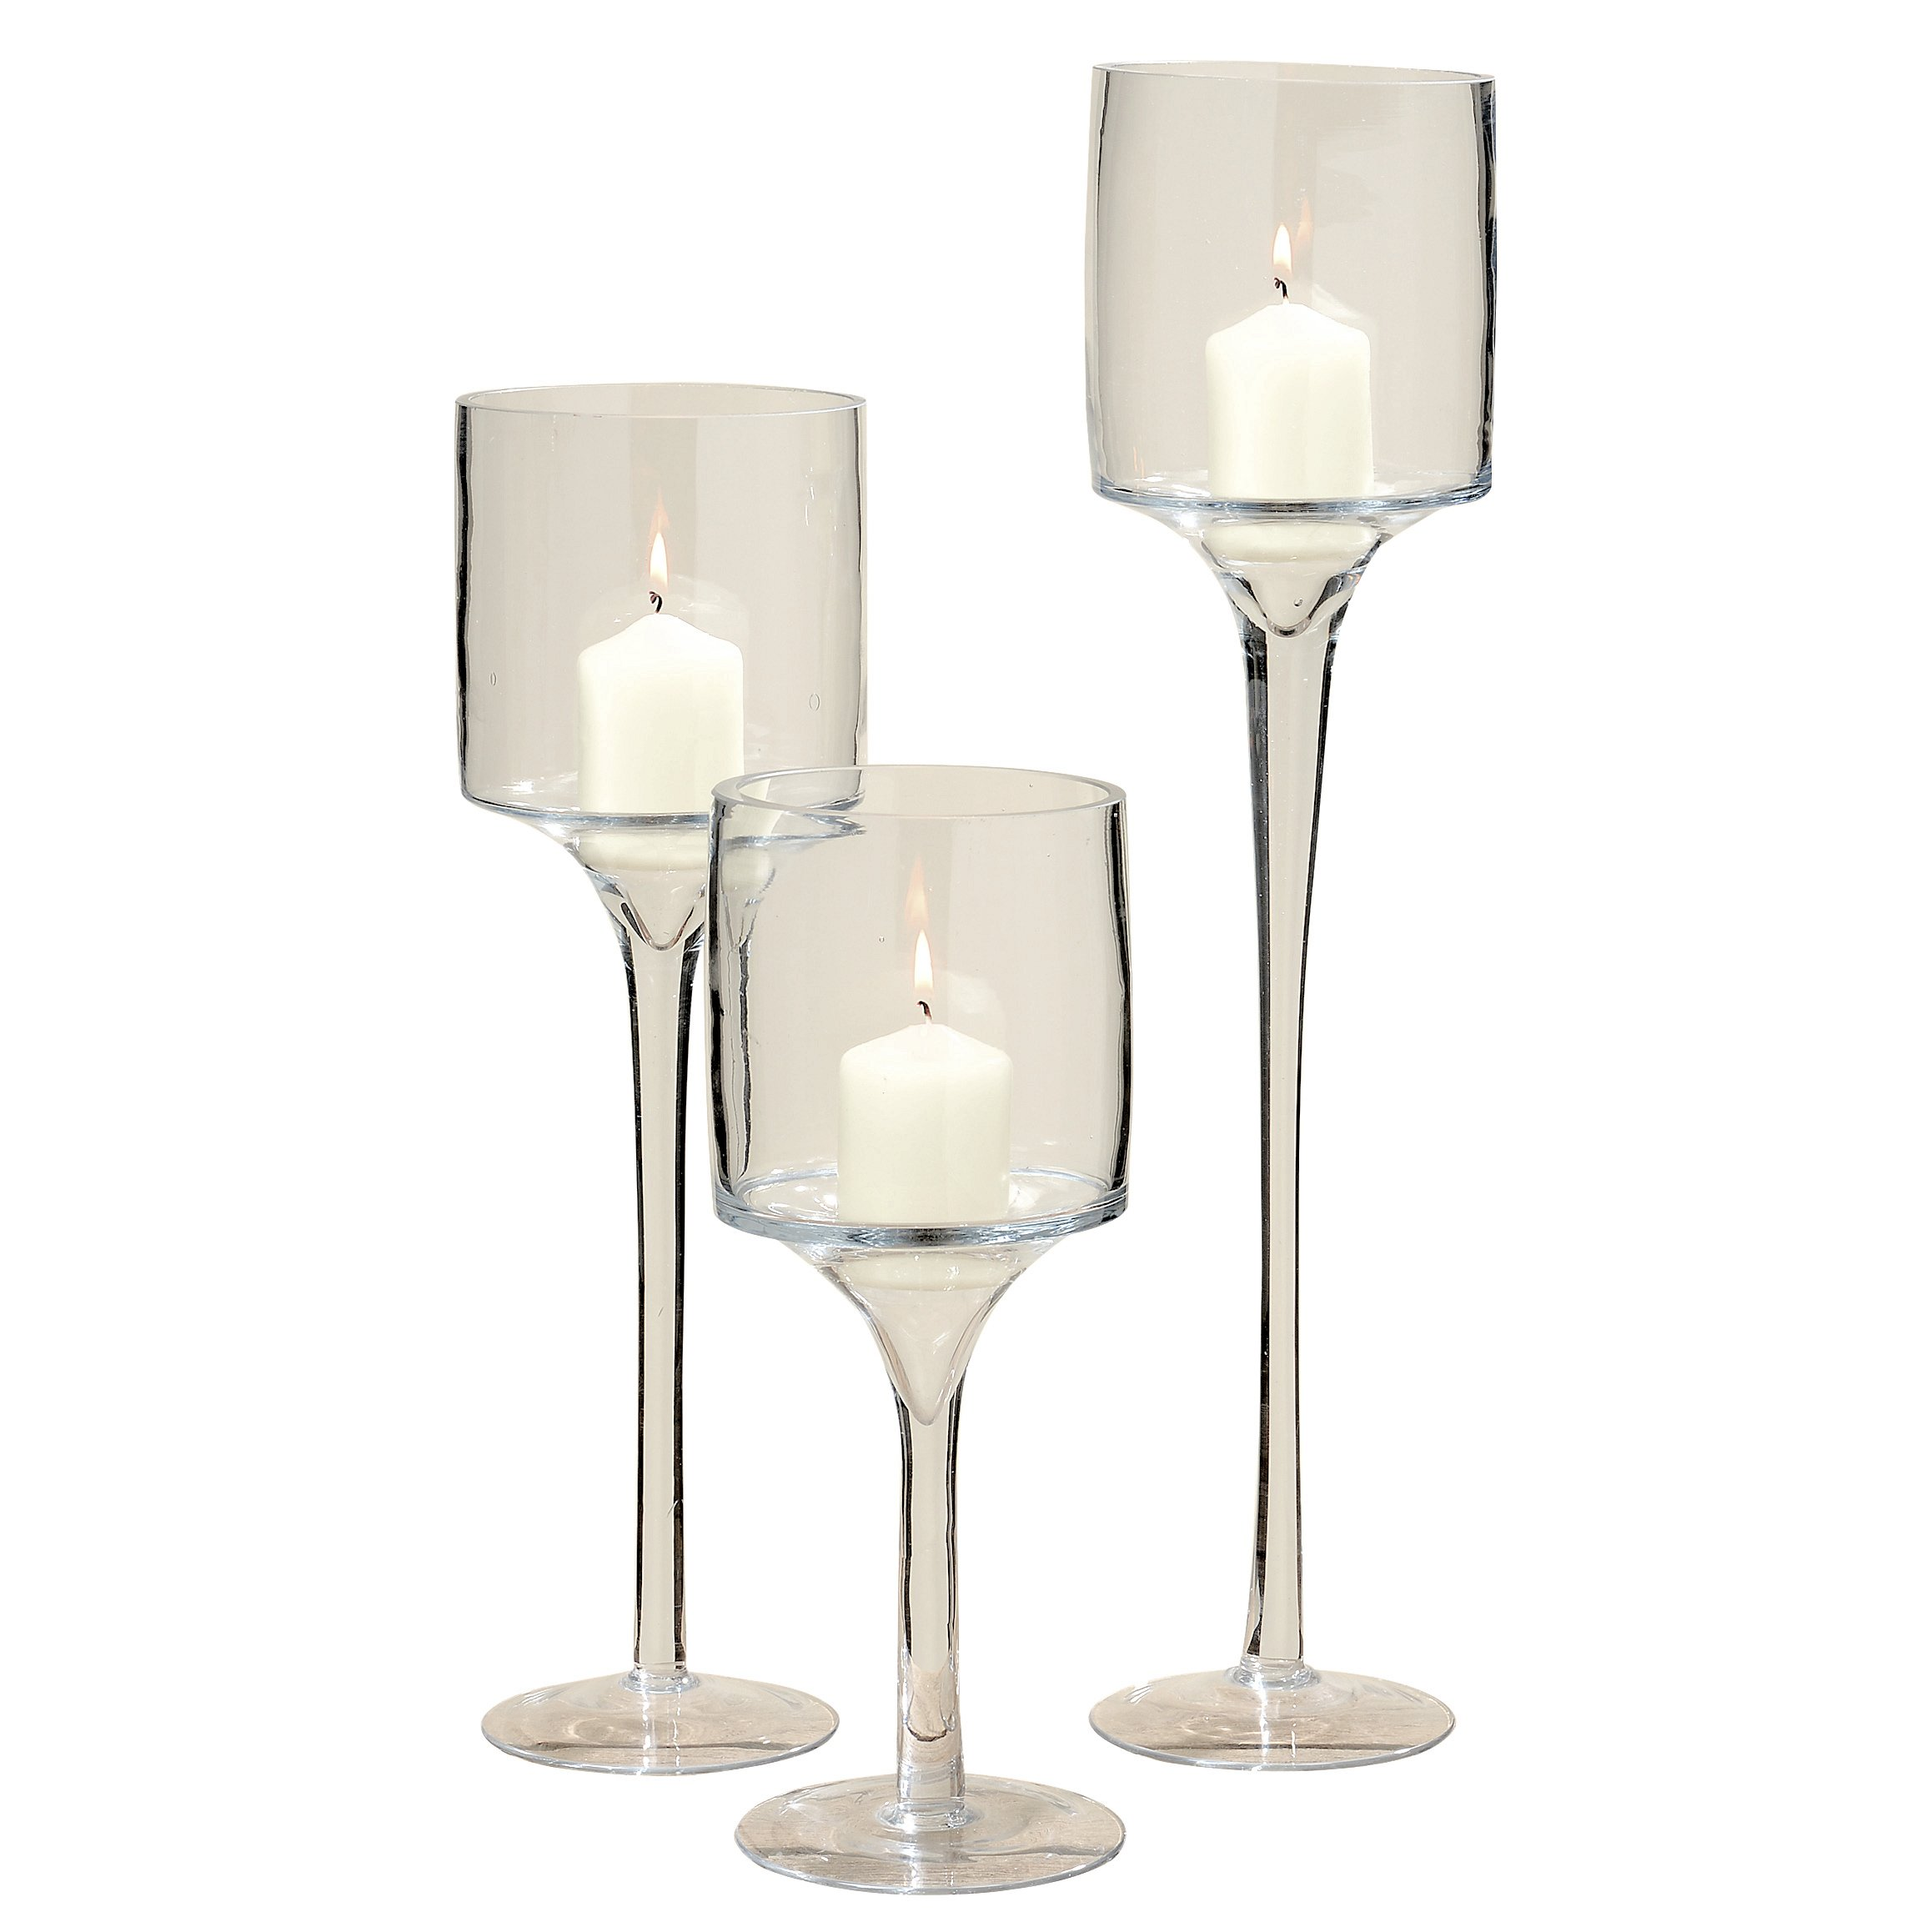 Spectacular Hamptons Long Stem Candle Holders, Set of 3, Centerpiece, Crystal Clear Glass, 19 3/4, 15 3/4, 11 3/4 Tall, 4 3/4 Diameter Cup for Tea Lights or Votives, Modern Wine Goblet Shaped